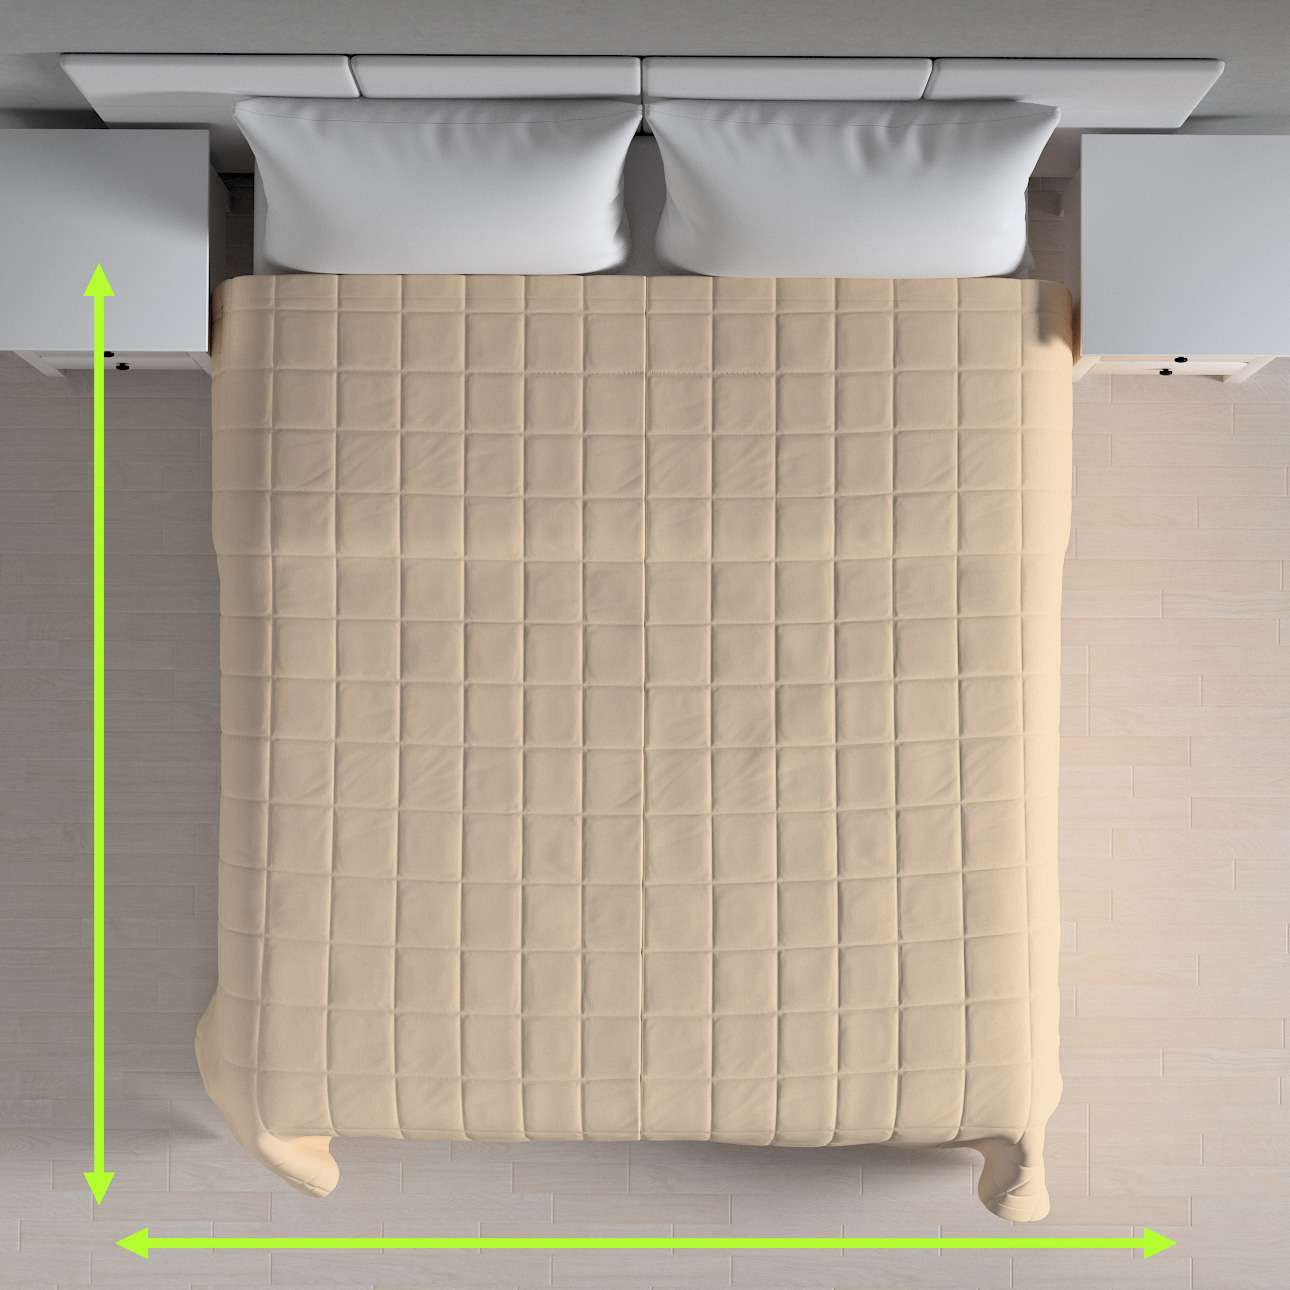 Quilted throw (check quilt pattern) in collection Chenille, fabric: 702-22